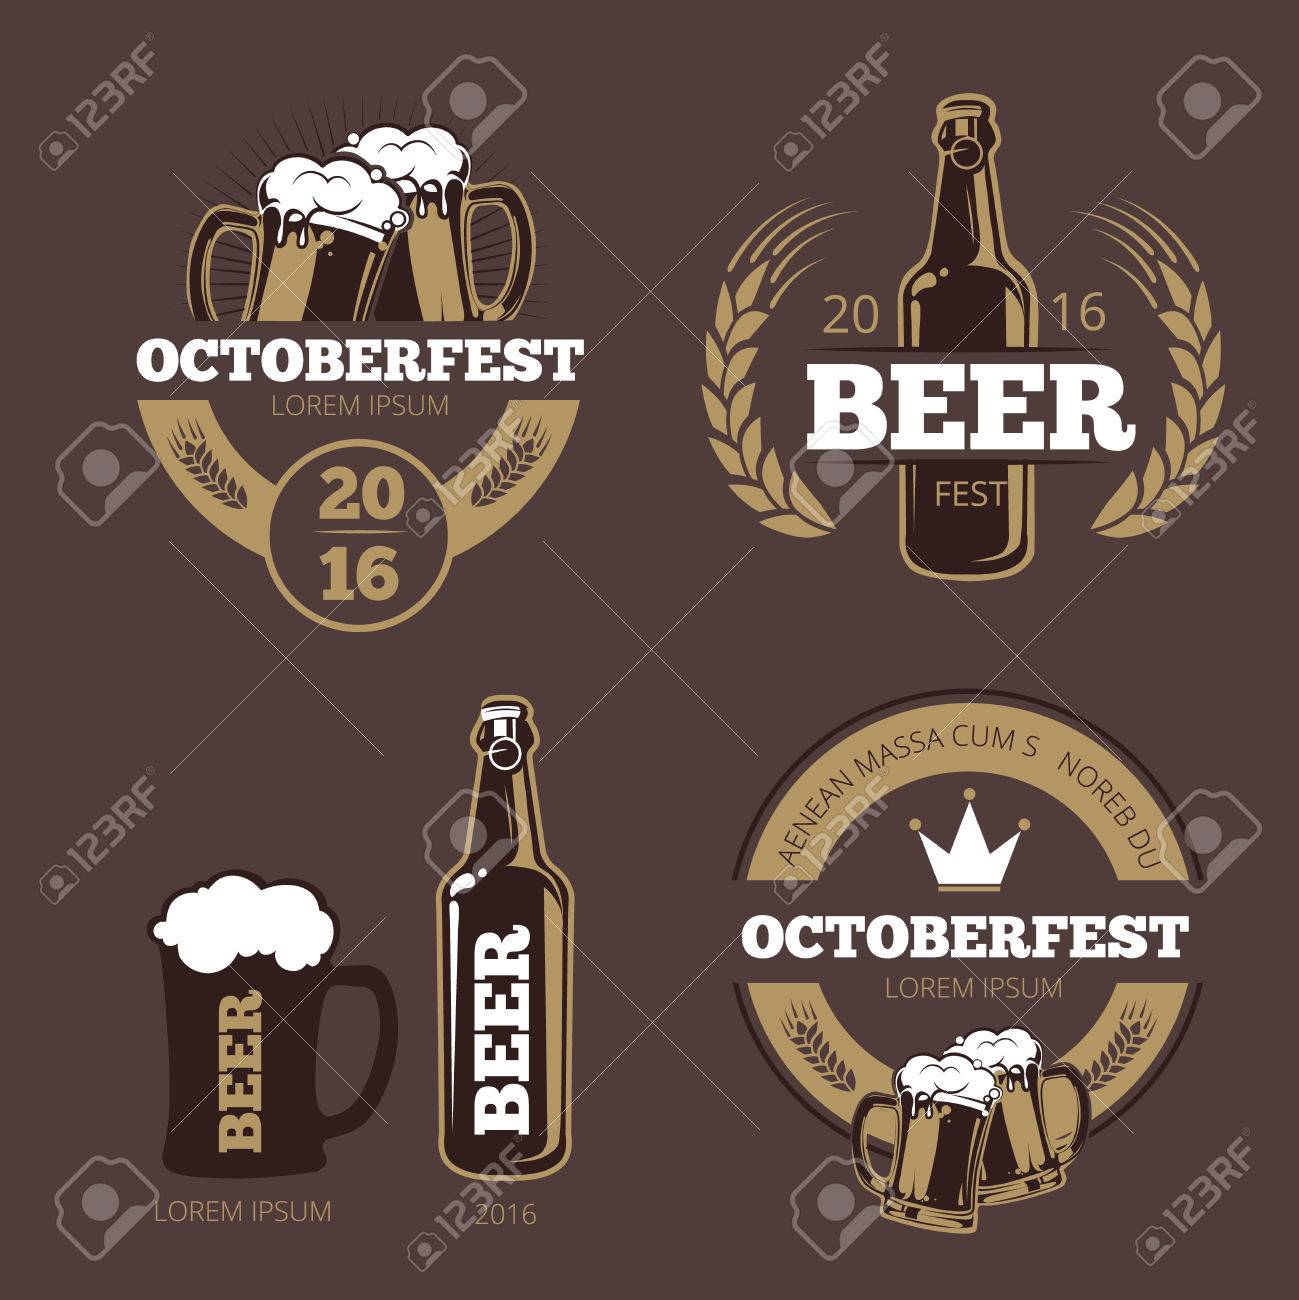 beer label templates for beer house brewing company pub and